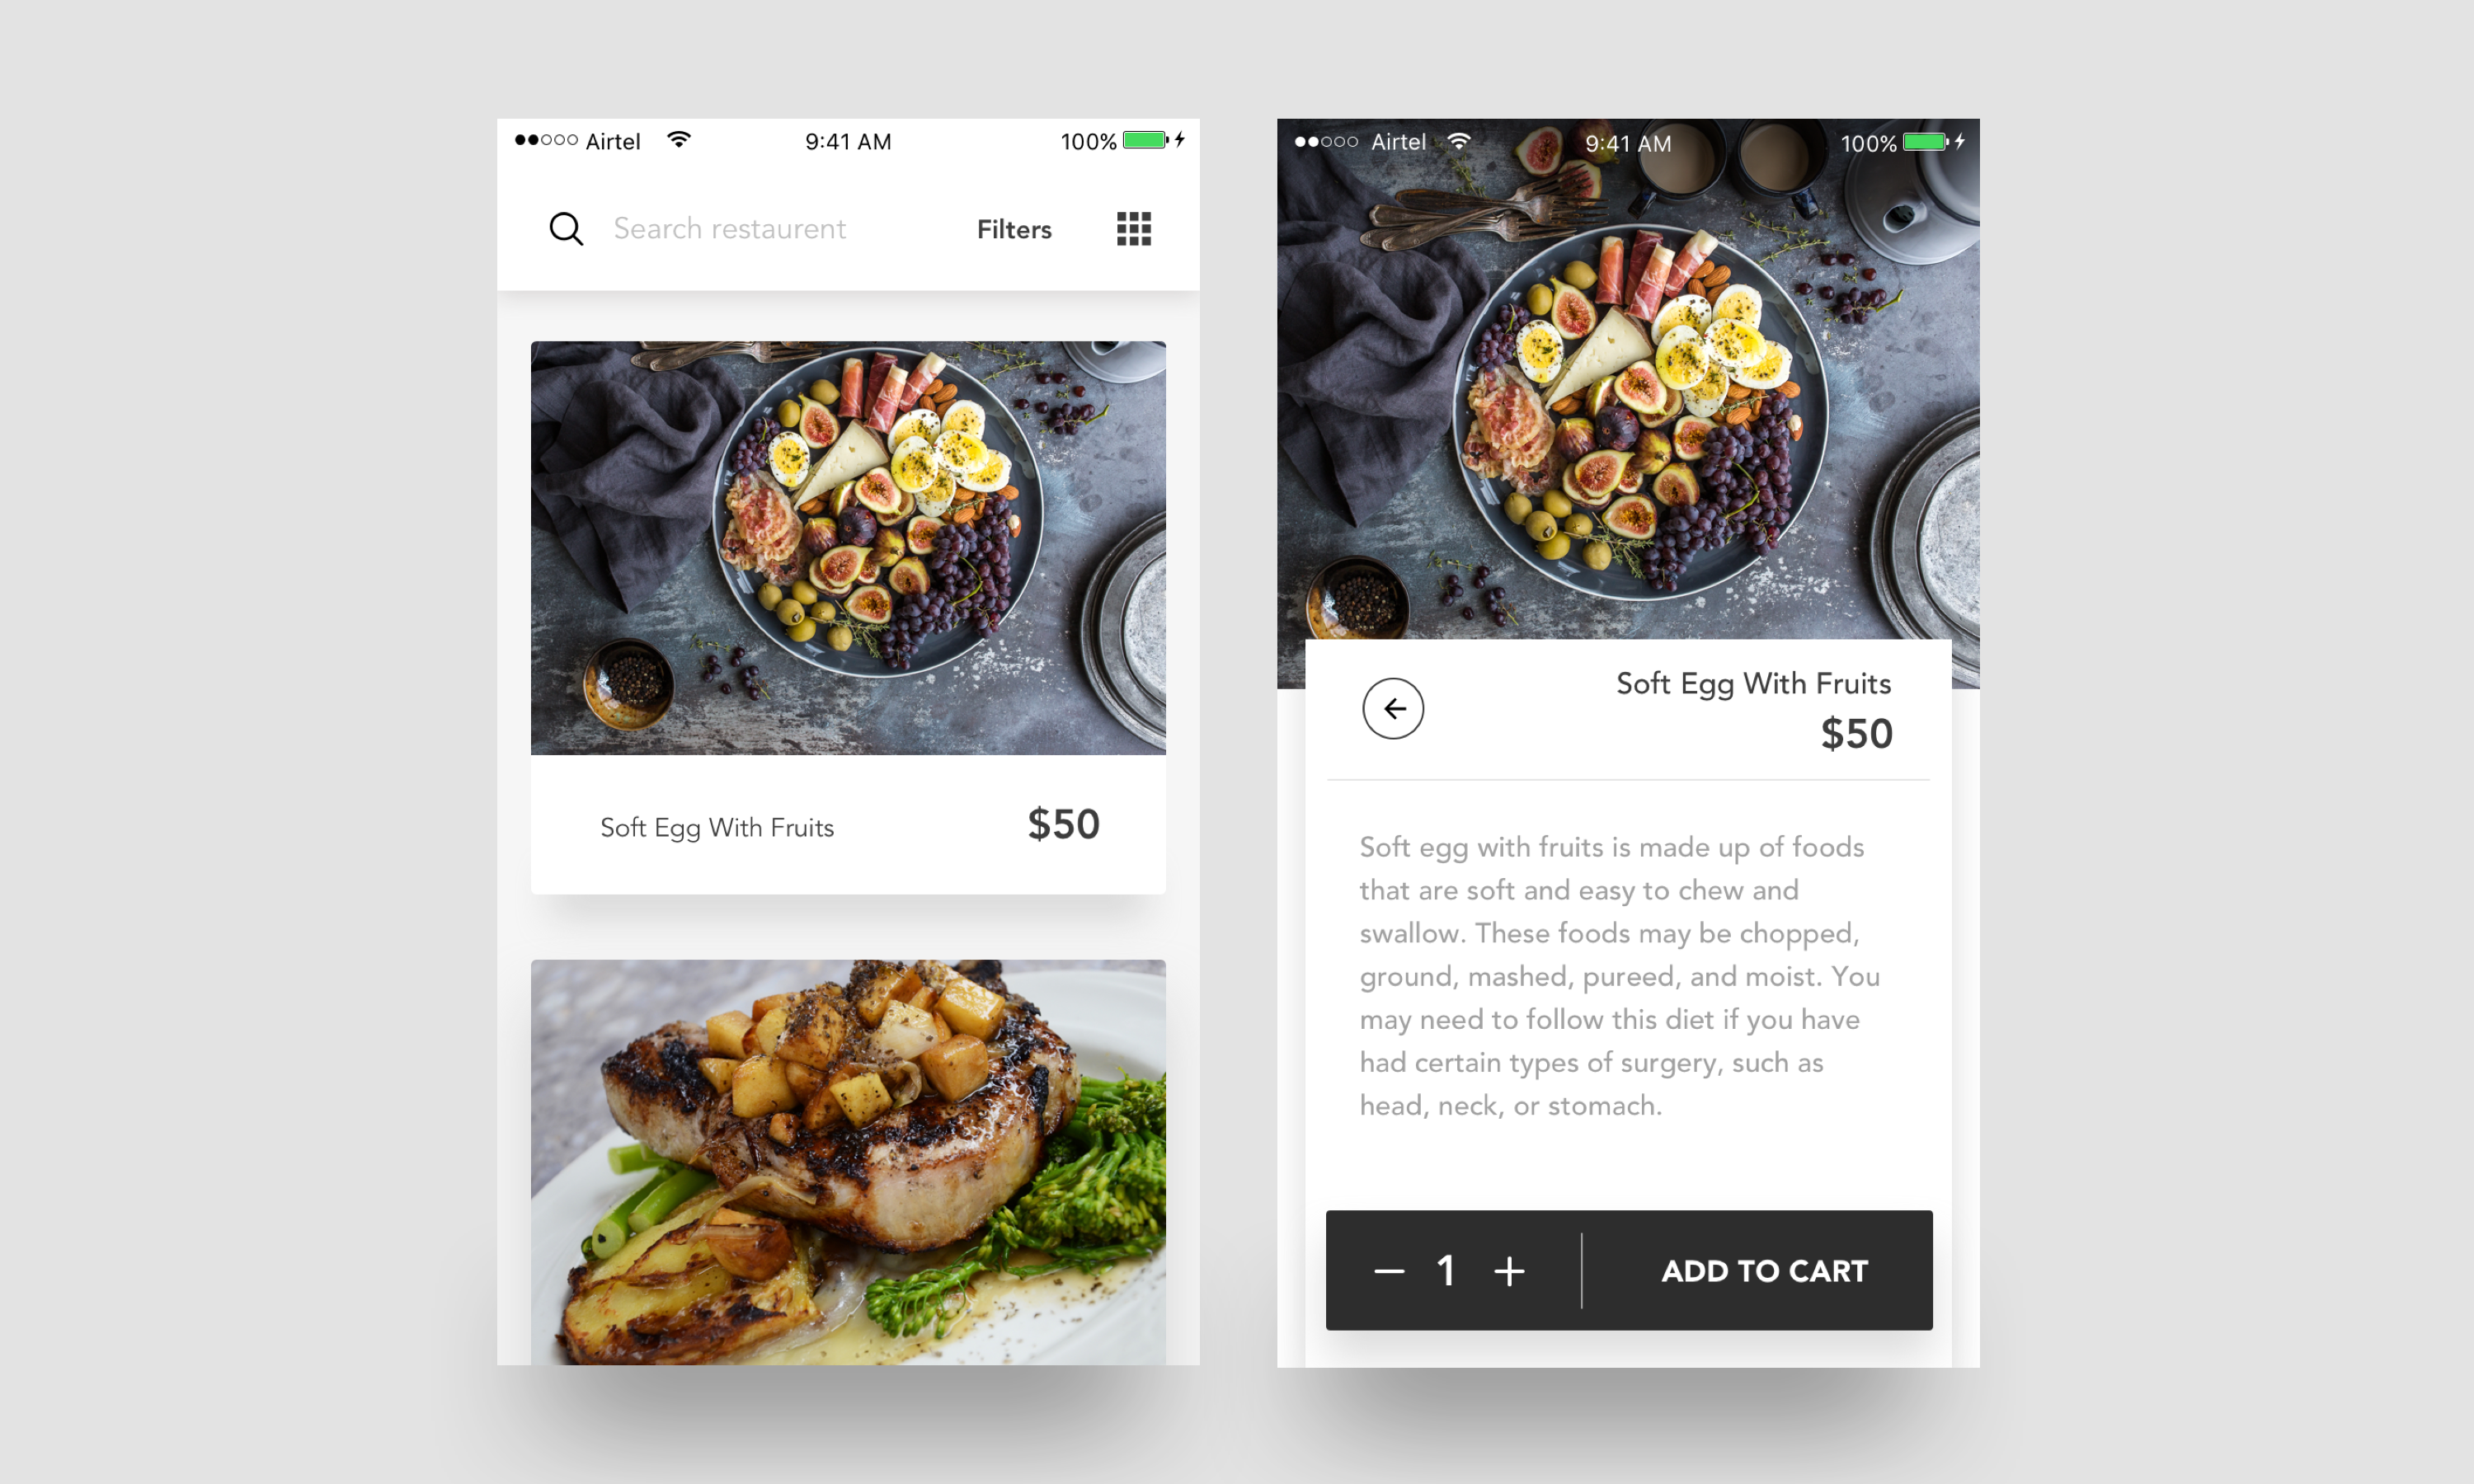 Food ios app sketch file premium download now on behance app i would like to show you a new food application concept for ios if you like it show some love by pressing l if you have any feedback on your mind forumfinder Gallery